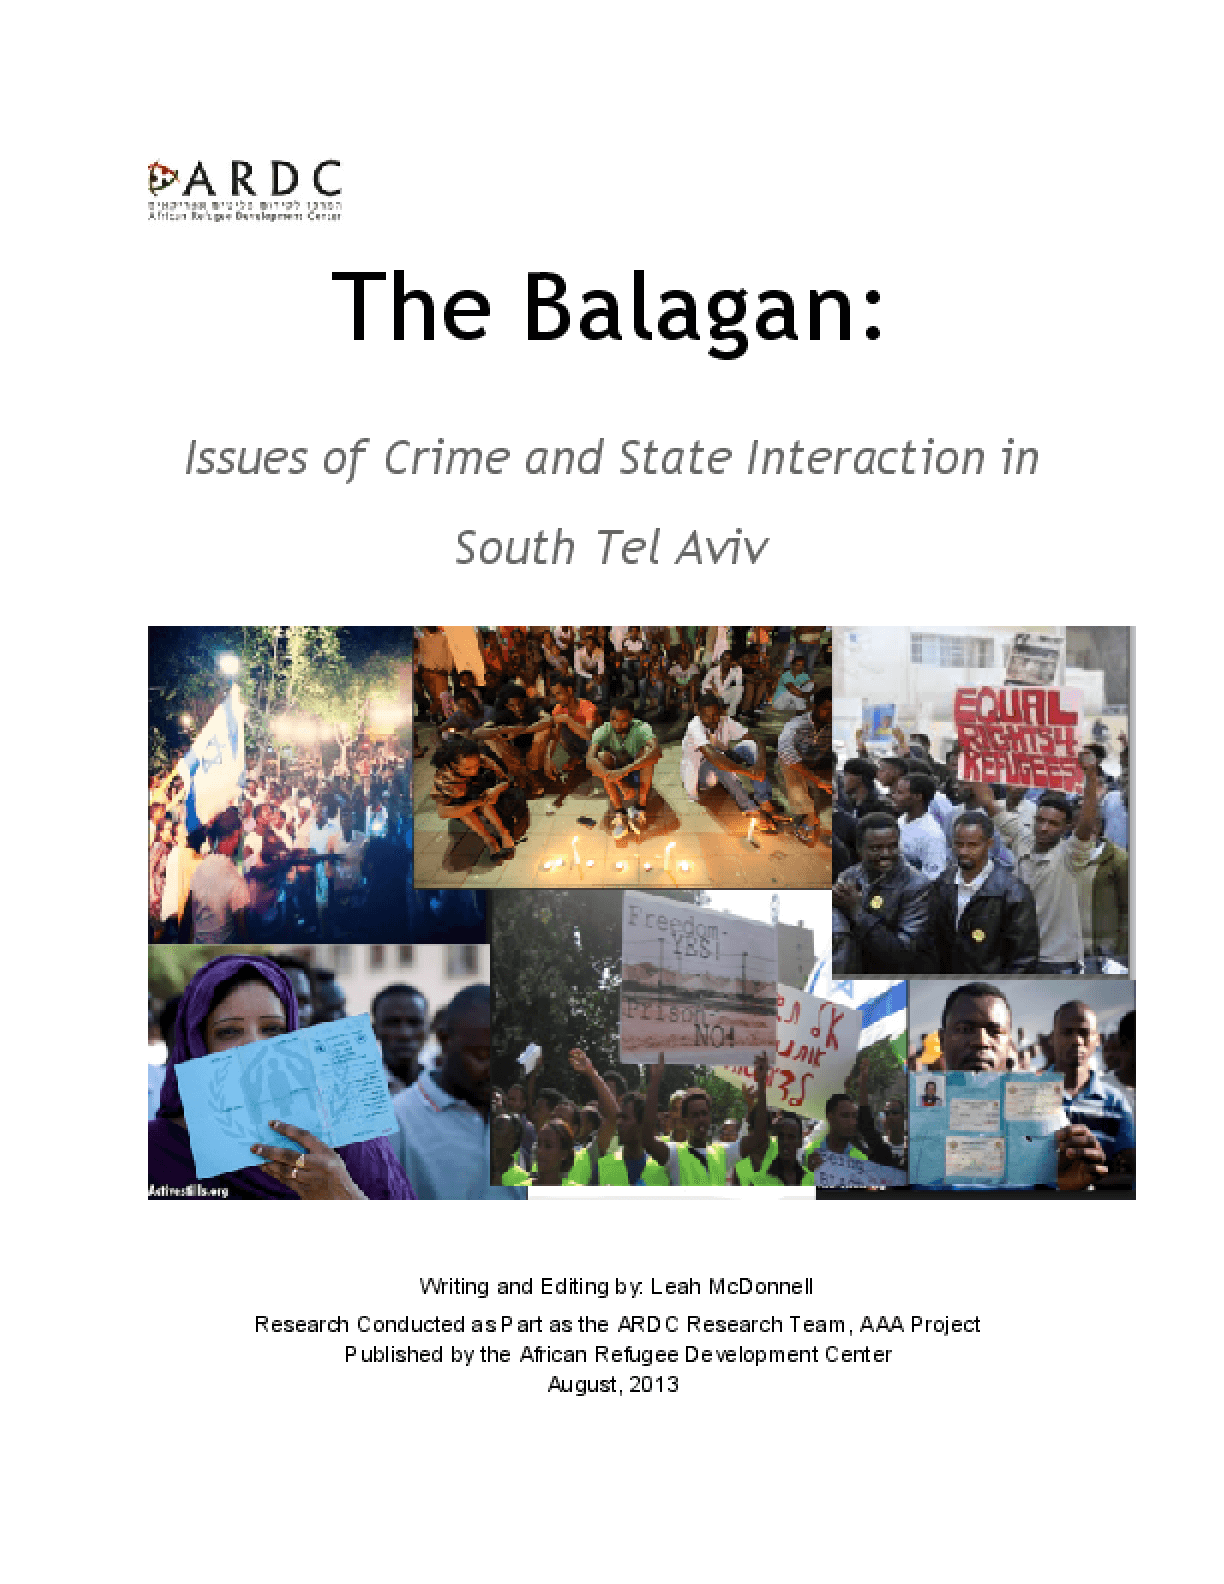 The Balagan: Issues of Crime and State Interaction in South Tel Aviv